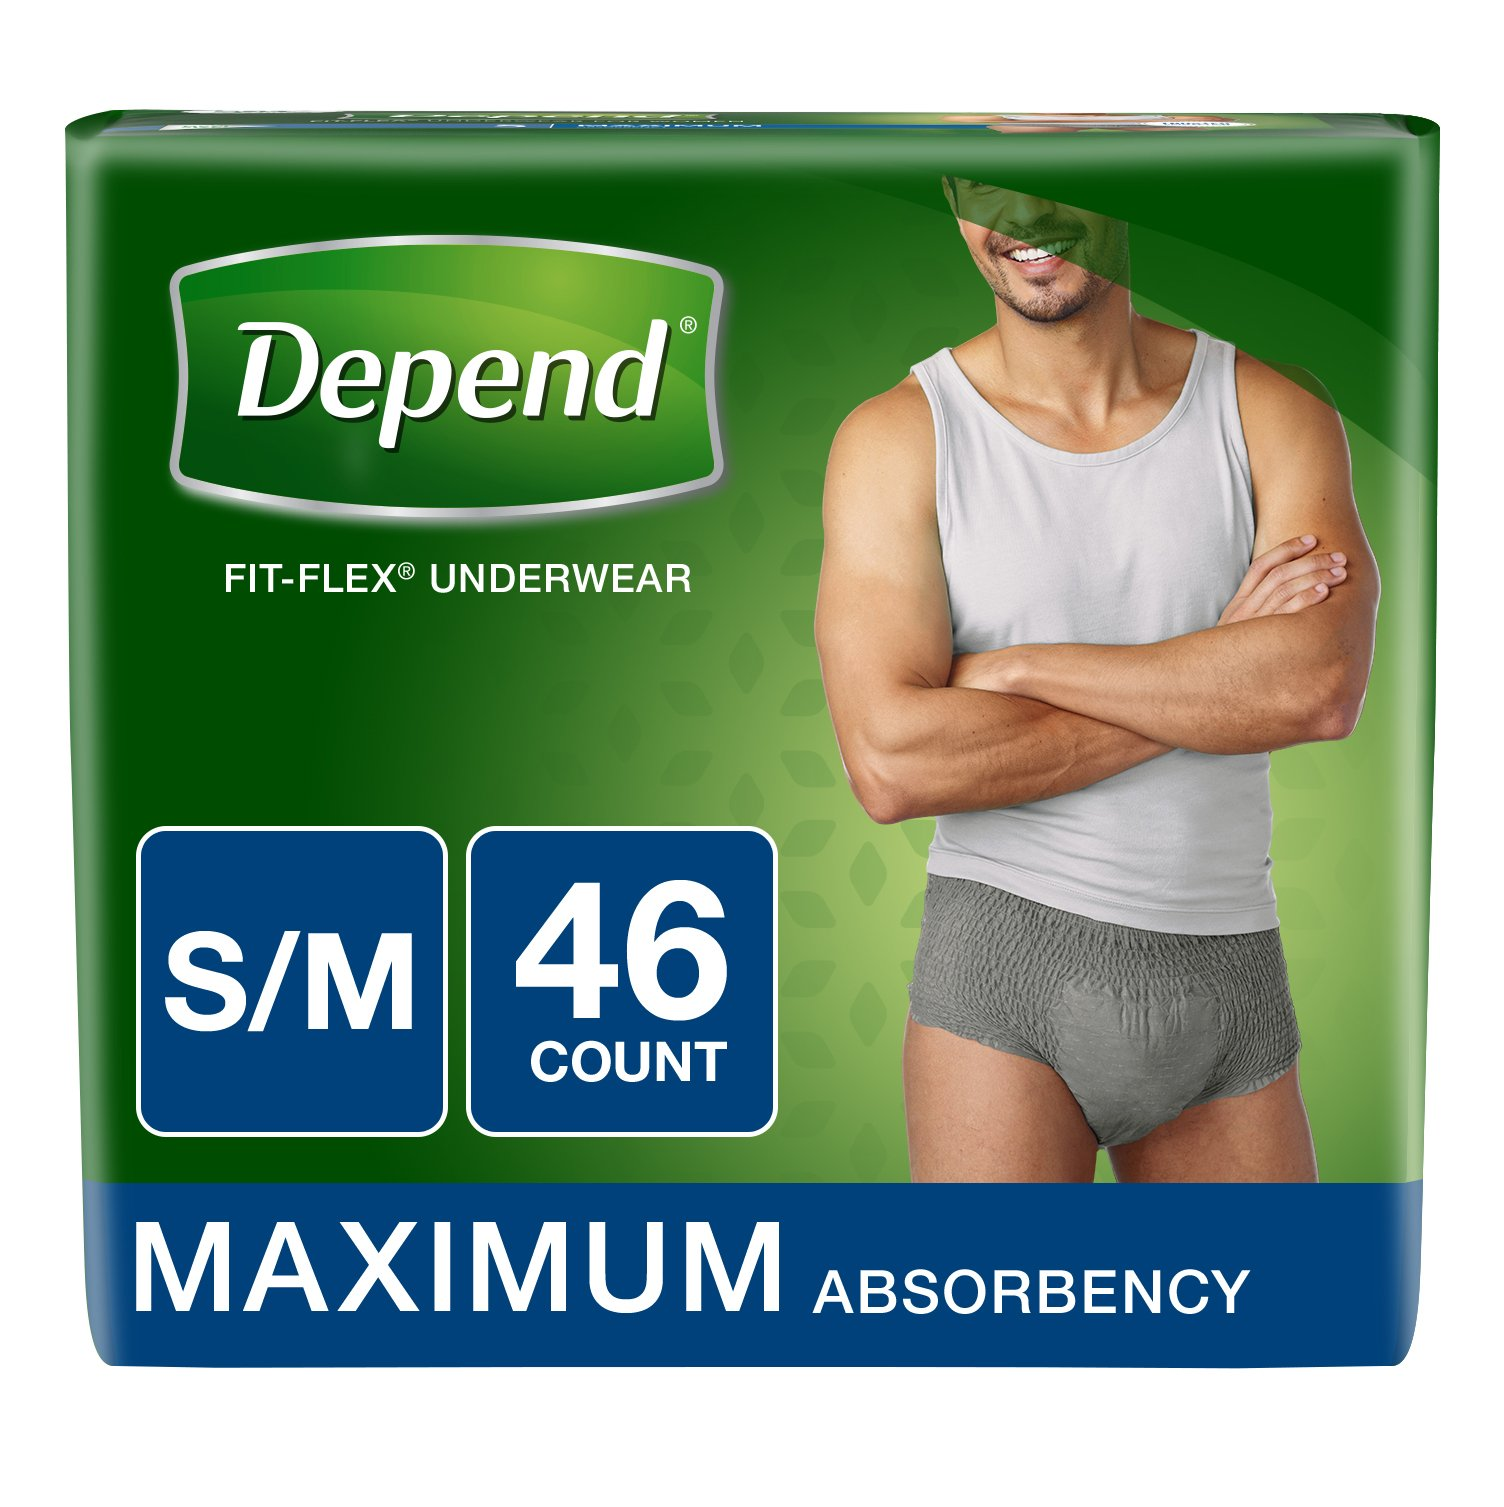 Depend FIT-Flex Incontinence Underwear for Men, Maximum Absorbency, S/M, Gray, 46 Count